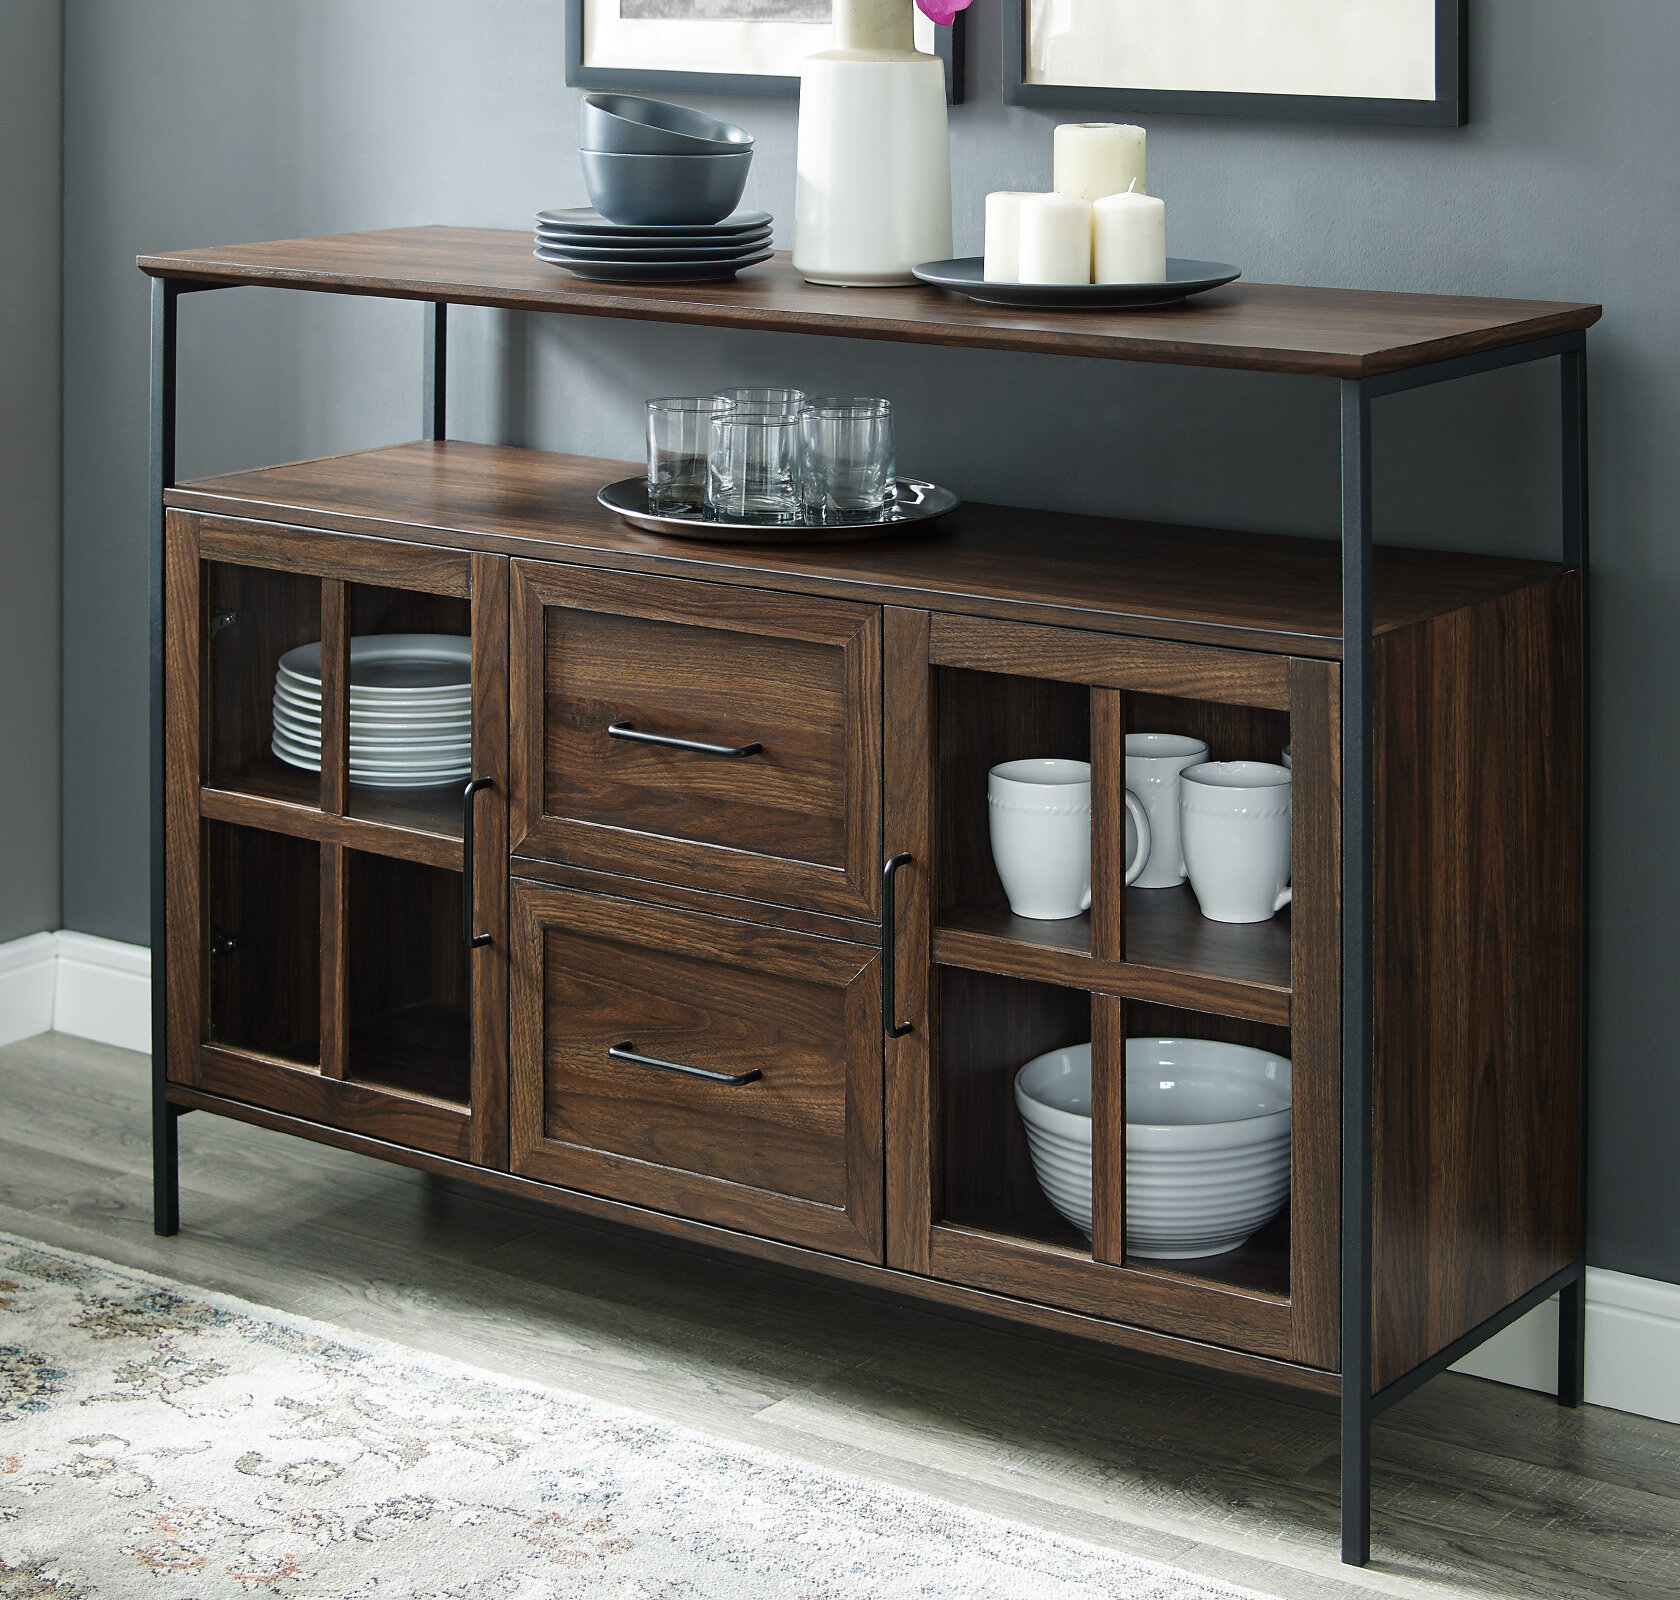 Narrow Buffet Table | Wayfair For Contemporary Three Tier Glass Buffets With Black Metal Frame (View 20 of 30)